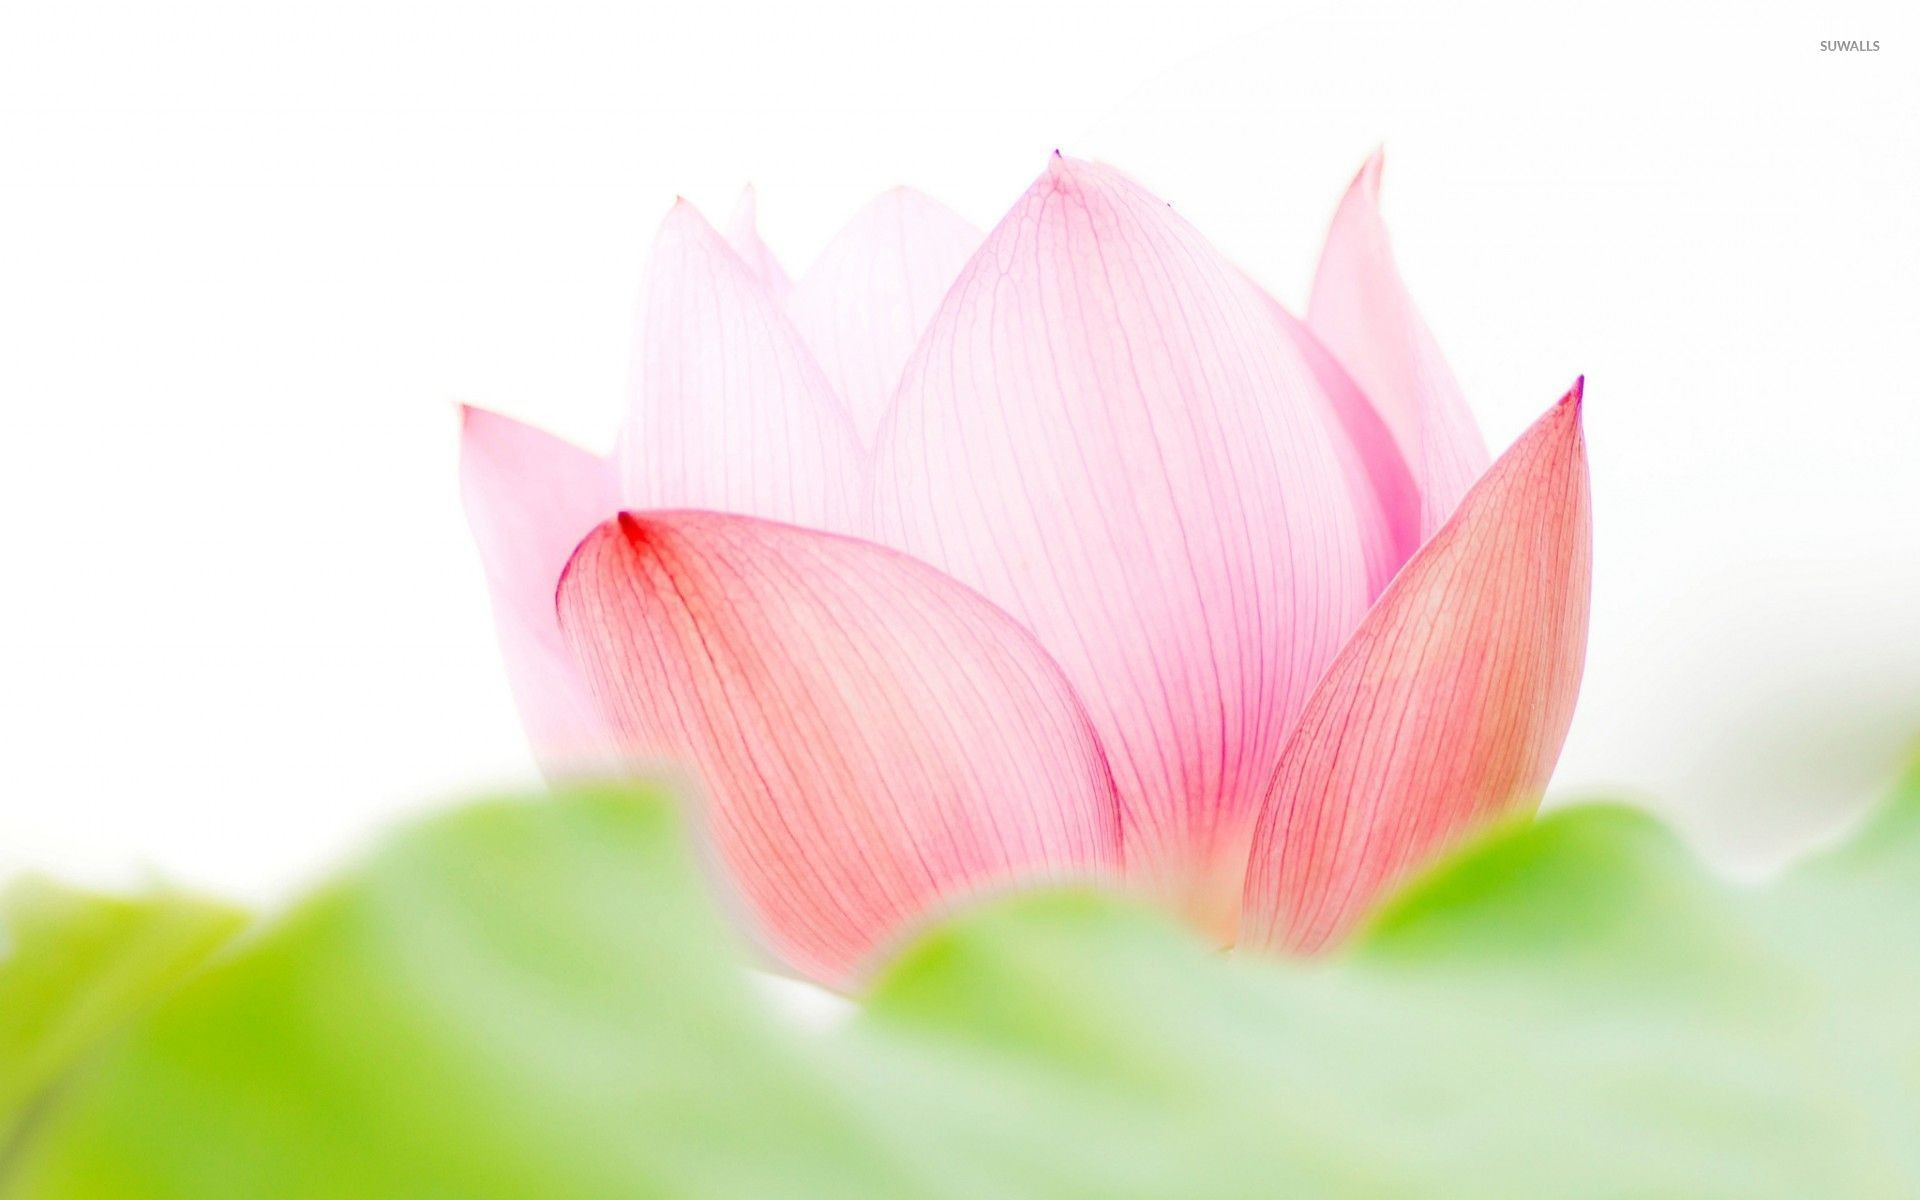 Lotus flower wallpapers 67 background pictures 1920x1200 lotus flower wallpaper izmirmasajfo